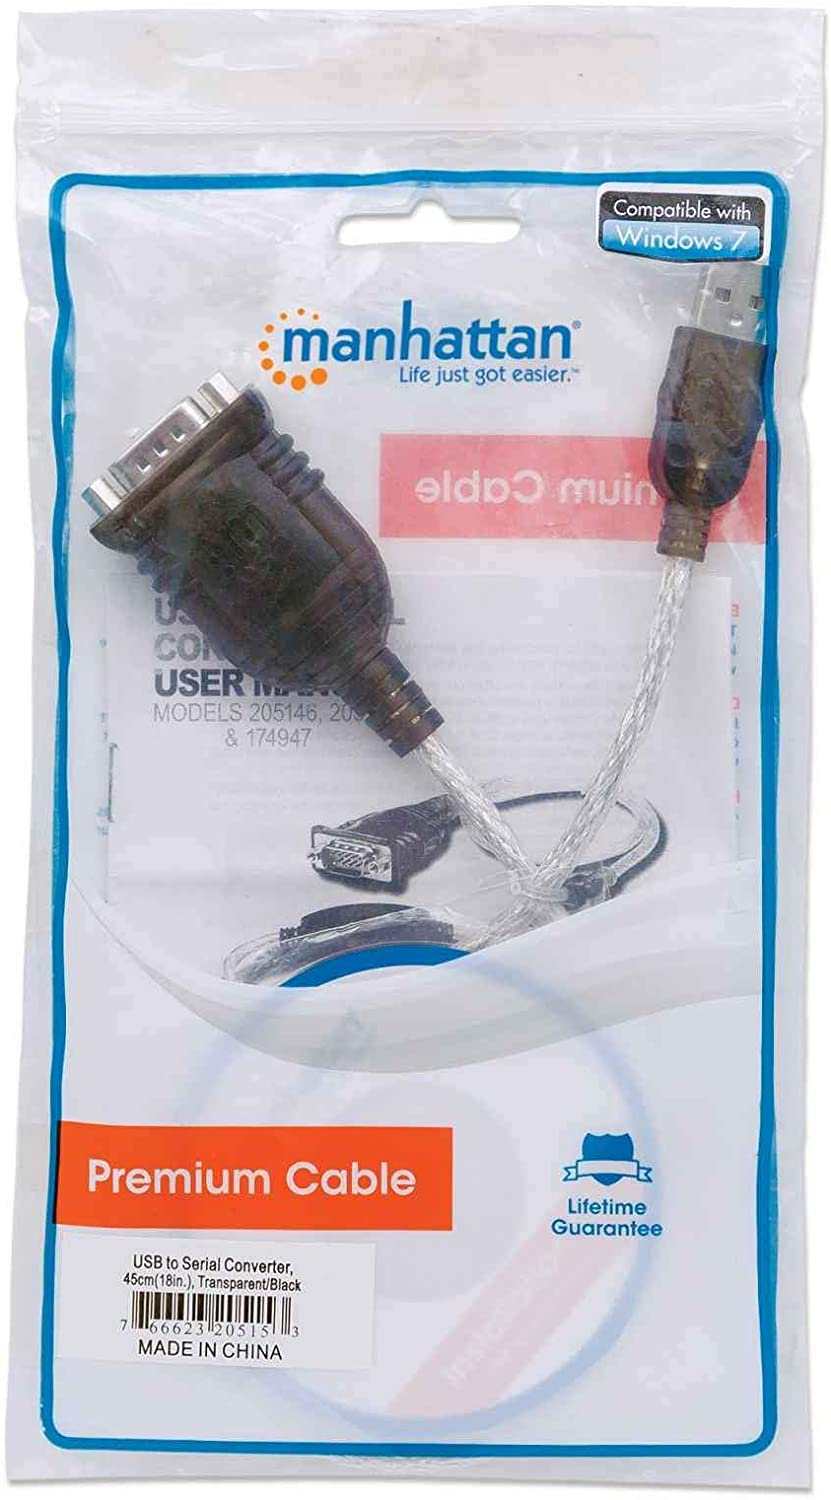 205146 Manhattan USB to Serial Converter Connects One Serial Device to A USB Port